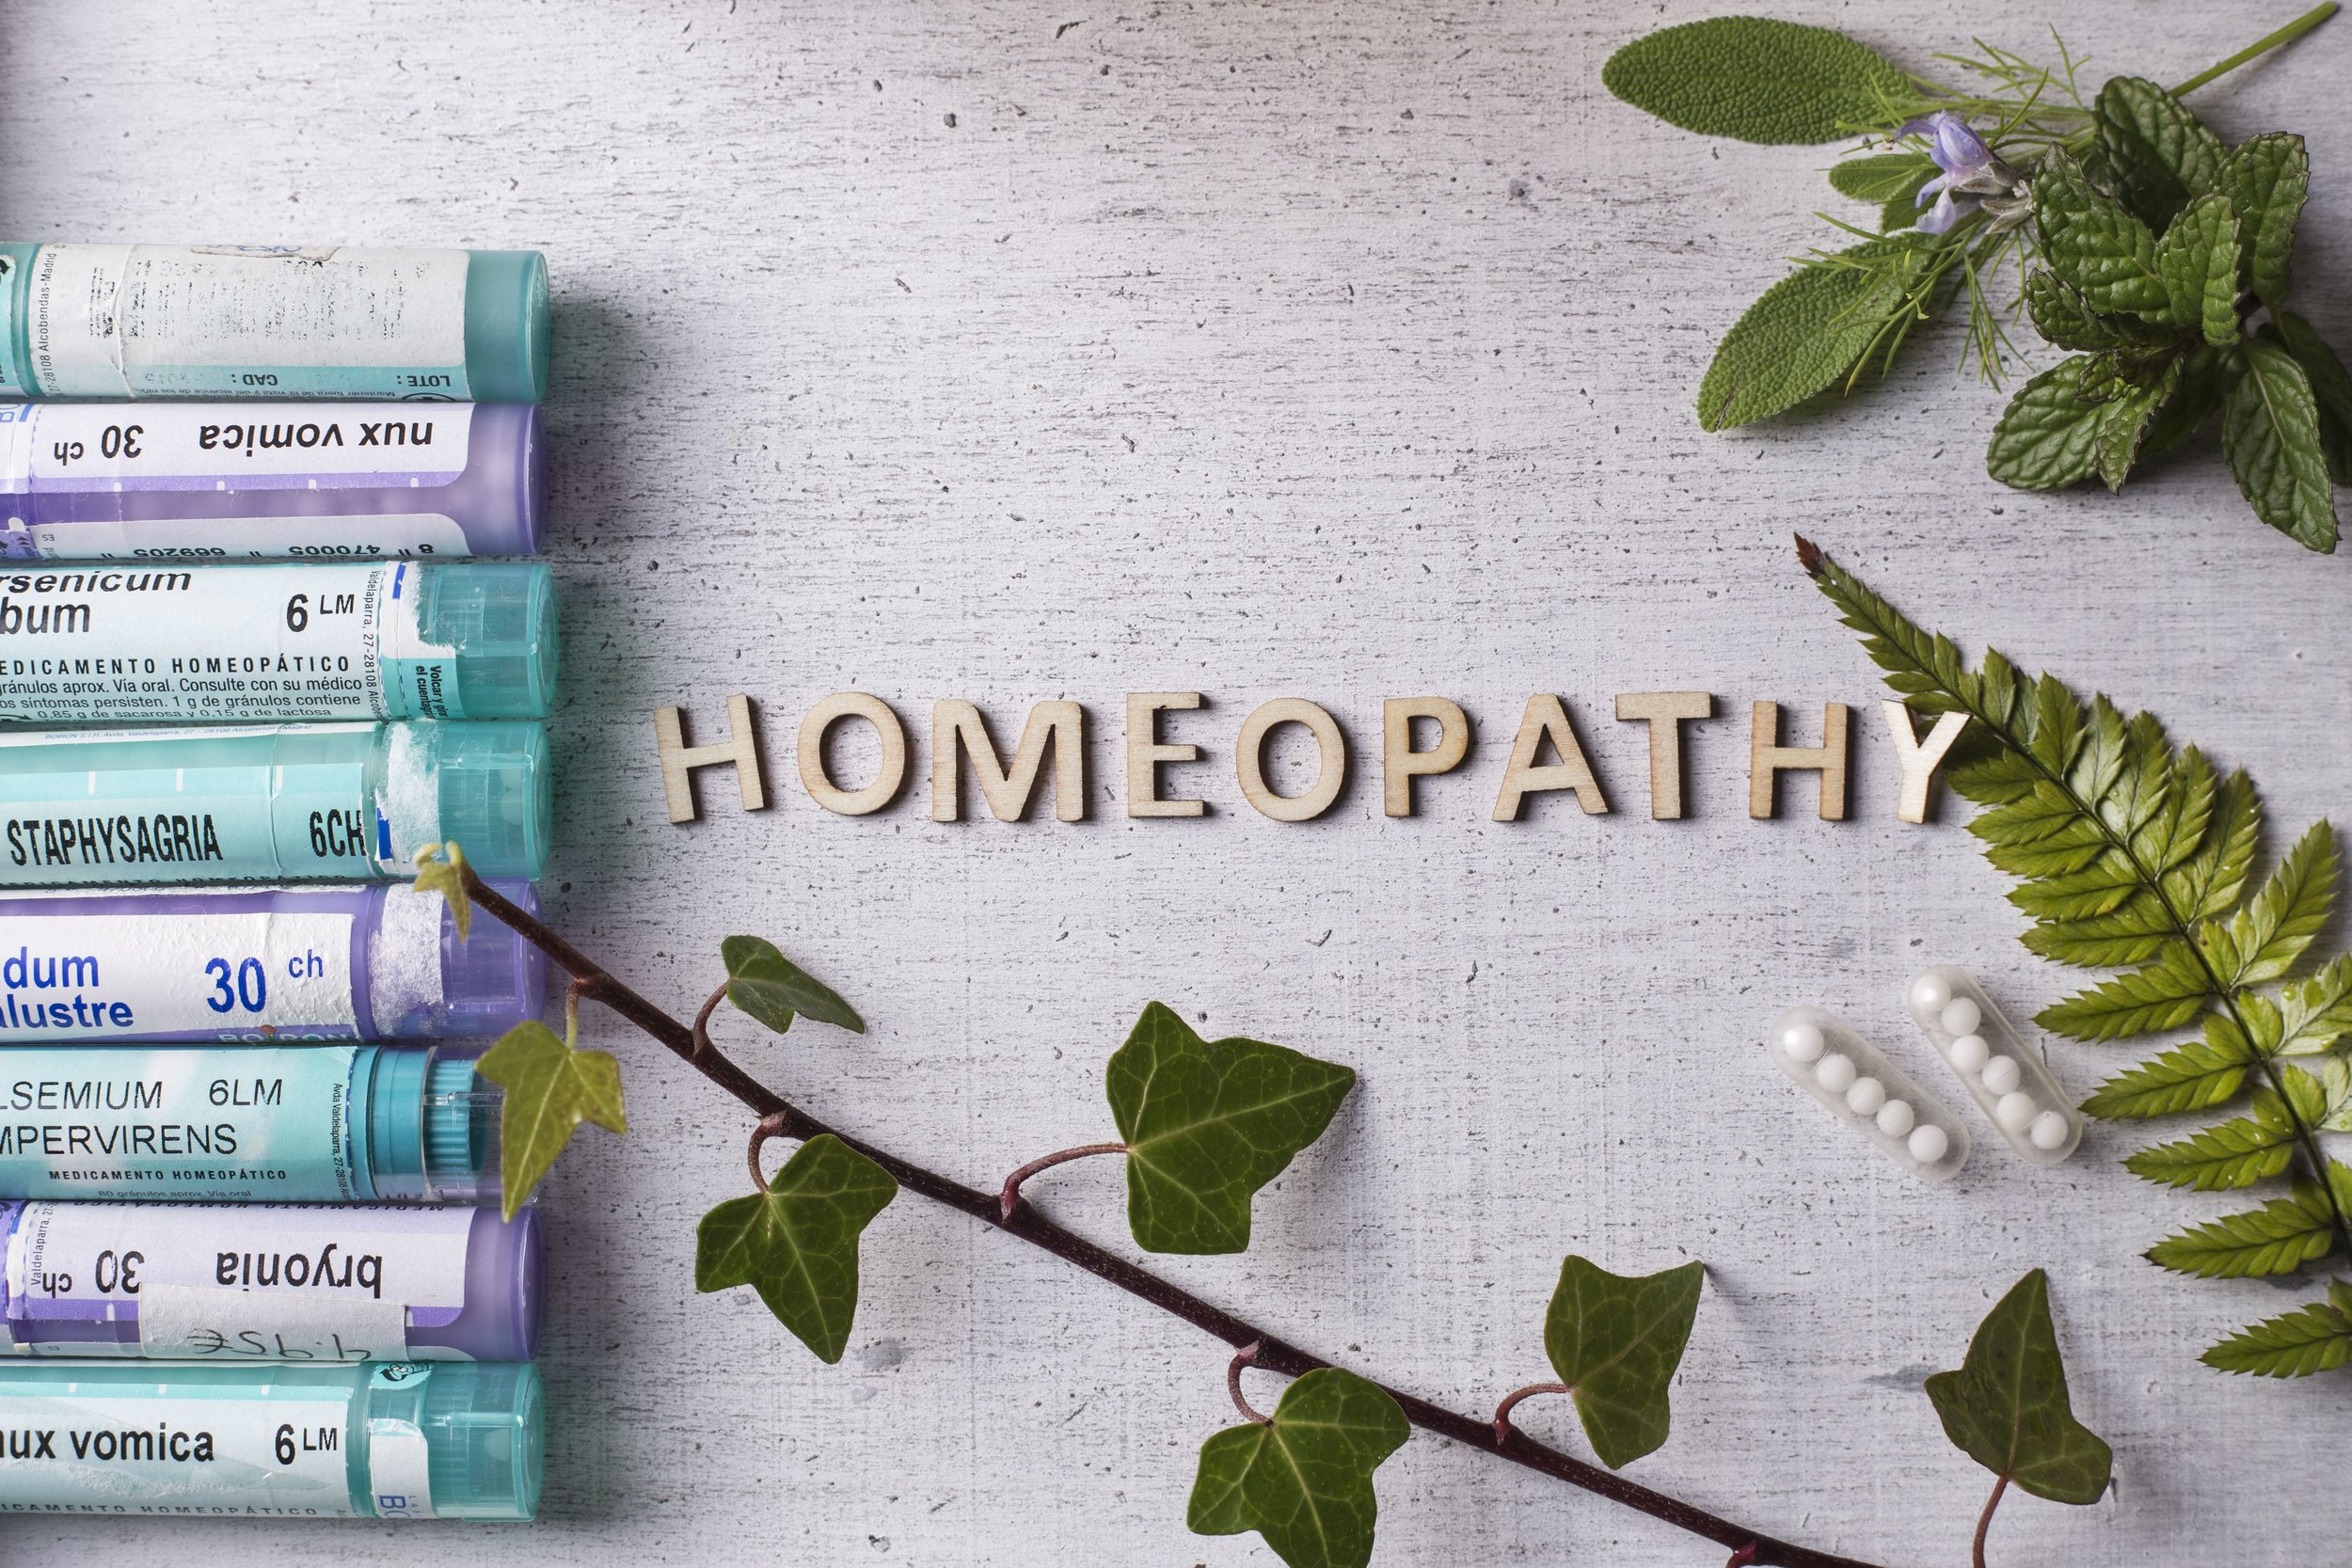 Photo from the British Homeopathy Association